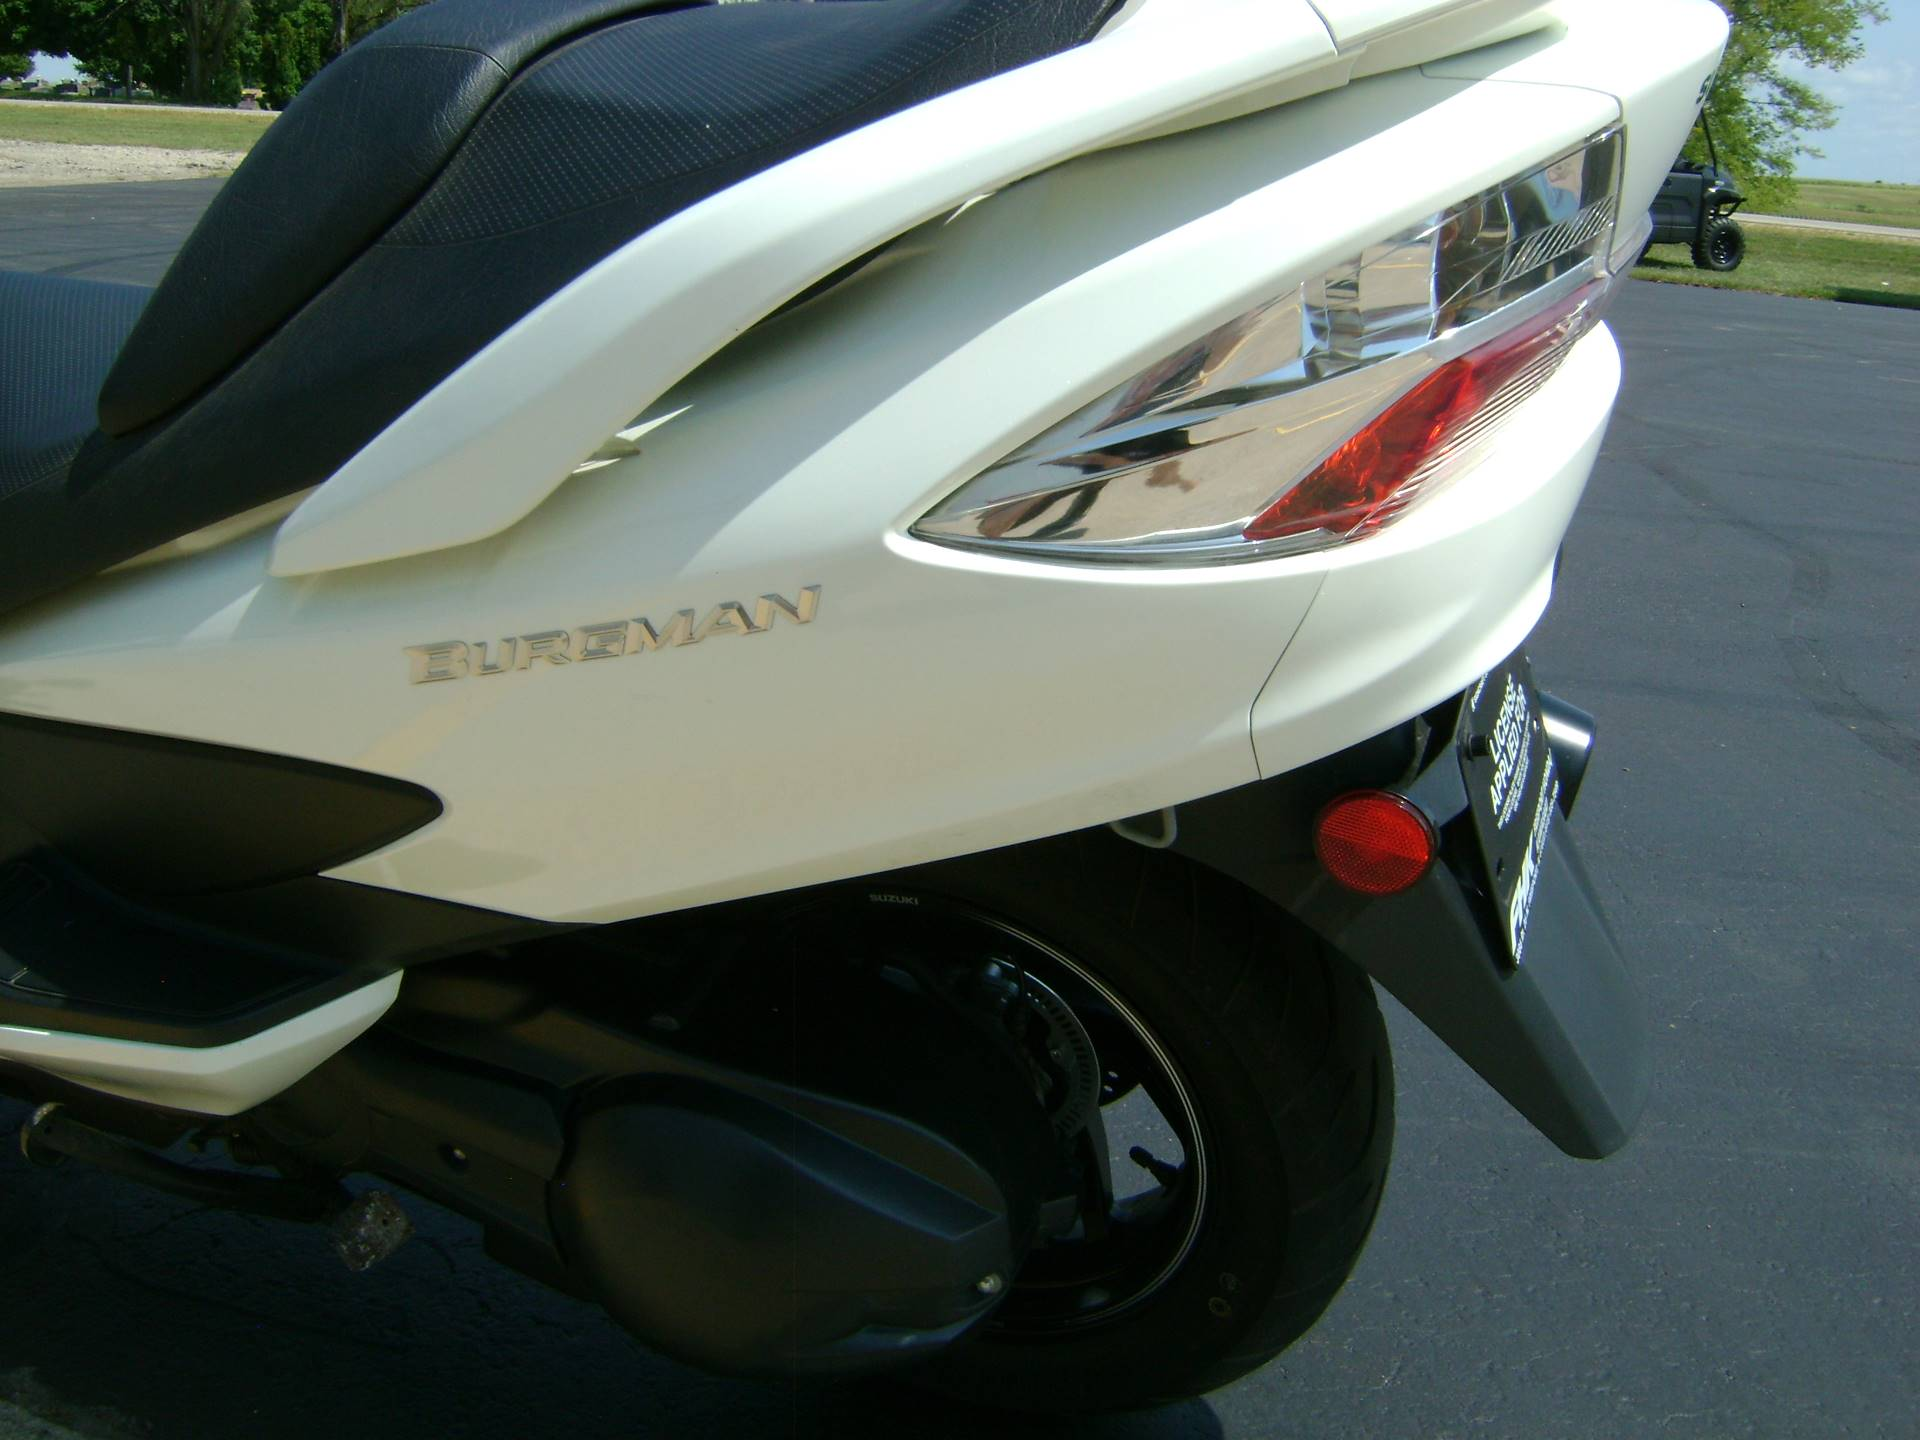 2012 Suzuki BURGMAN 400 ABS in Freeport, Illinois - Photo 11